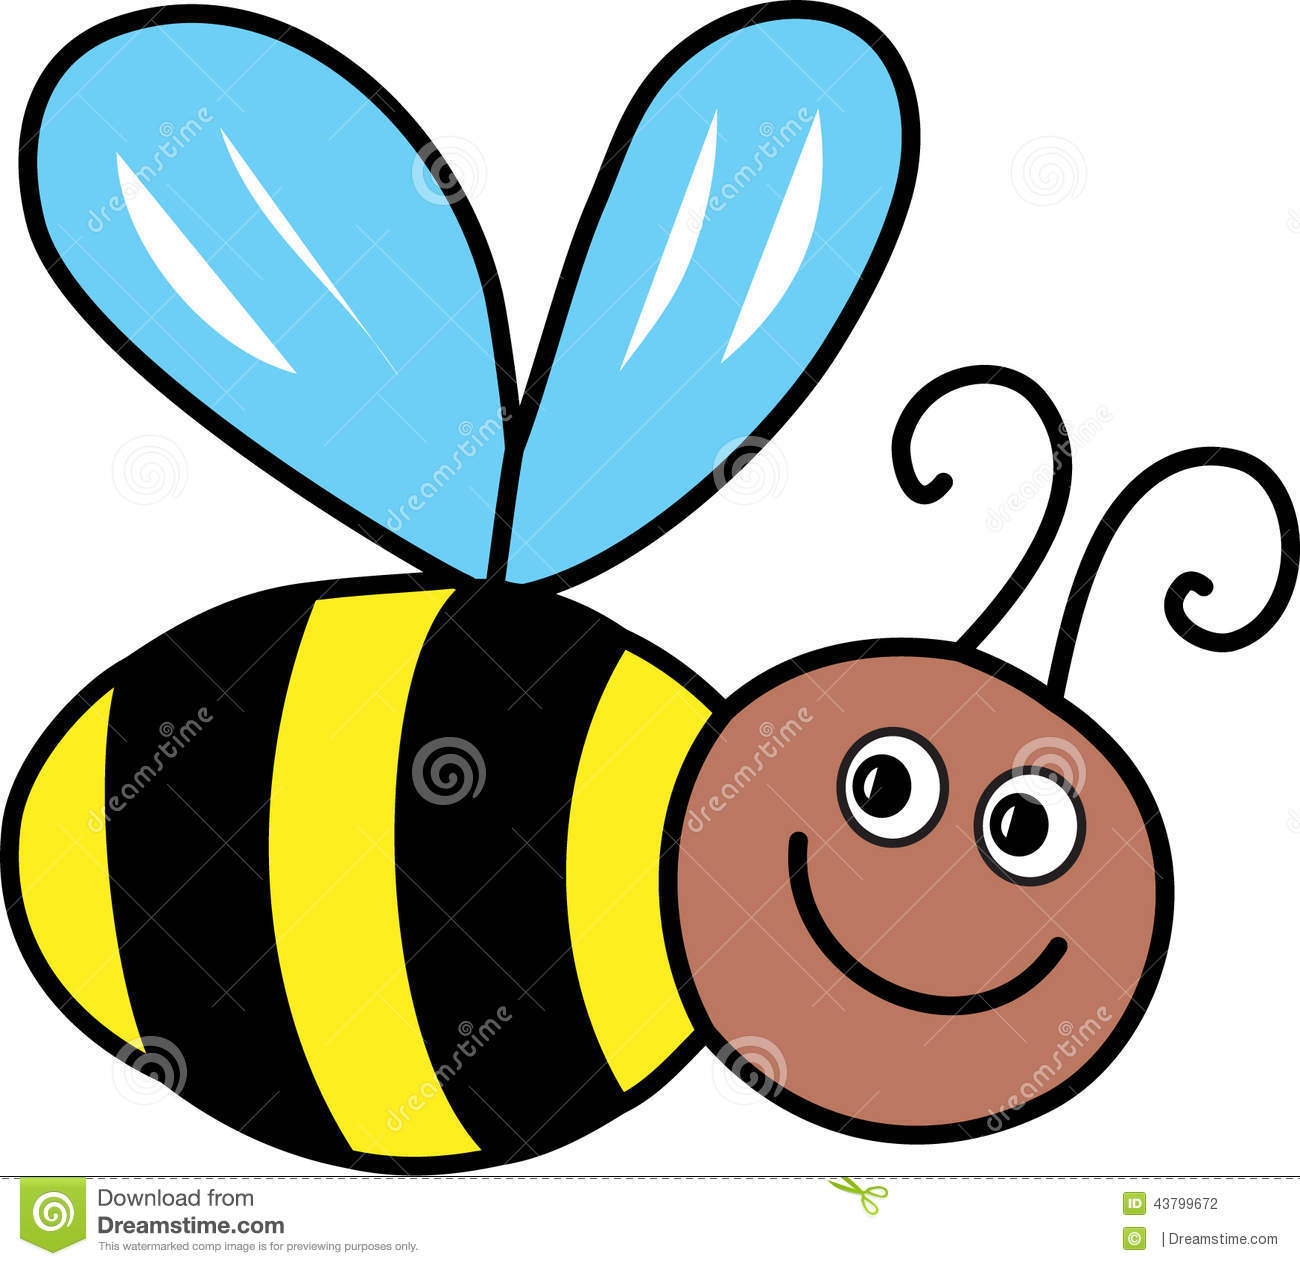 Buzzing in a bees life